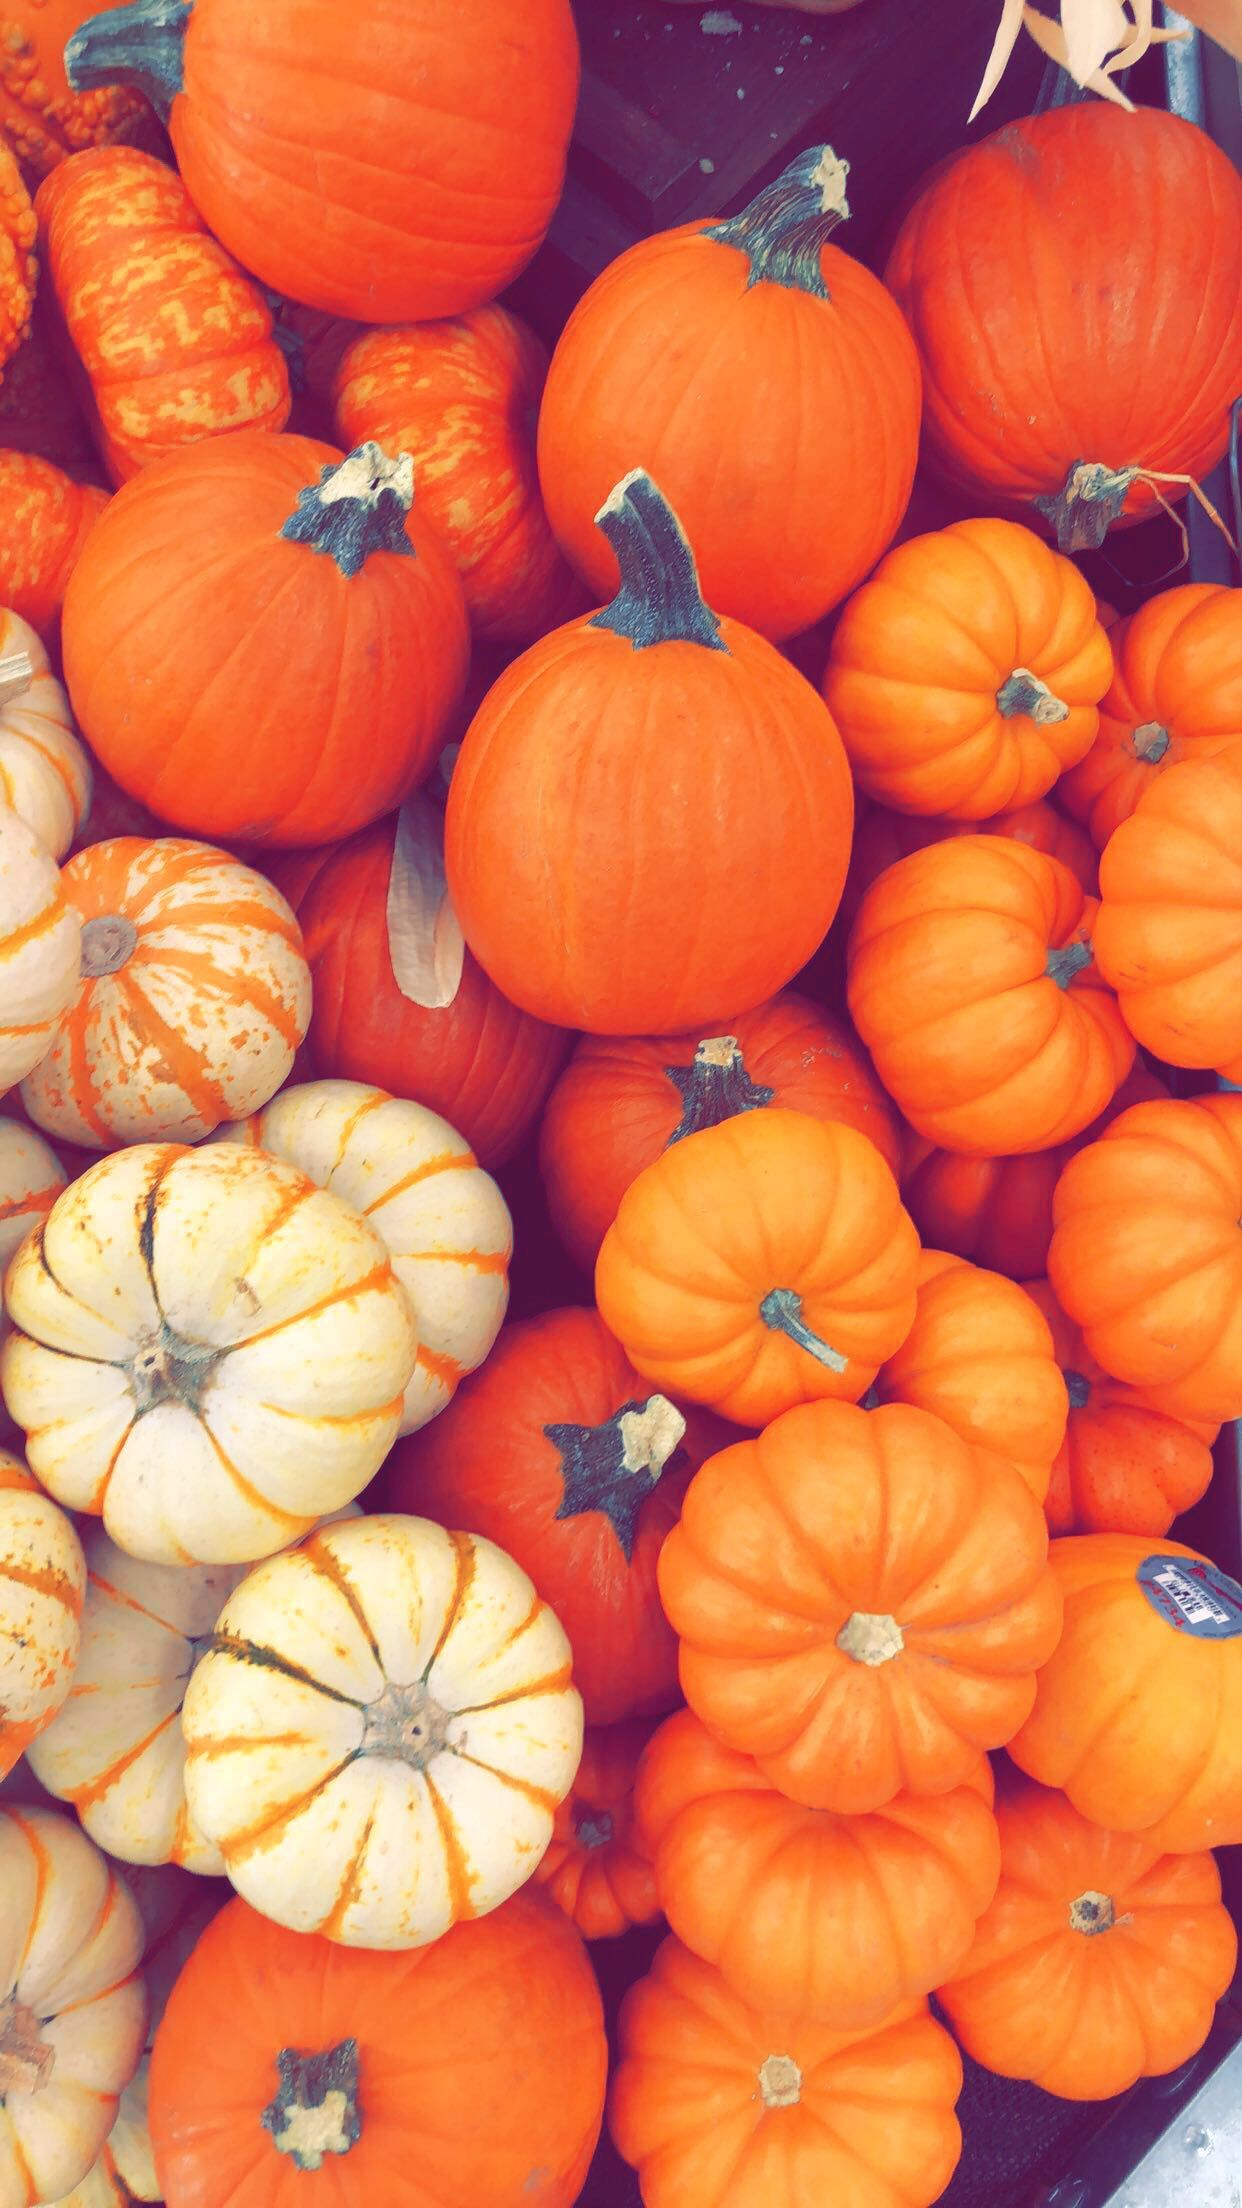 Fall Pumpkin wallpaper Iphone wallpaper fall, Fall wallpaper